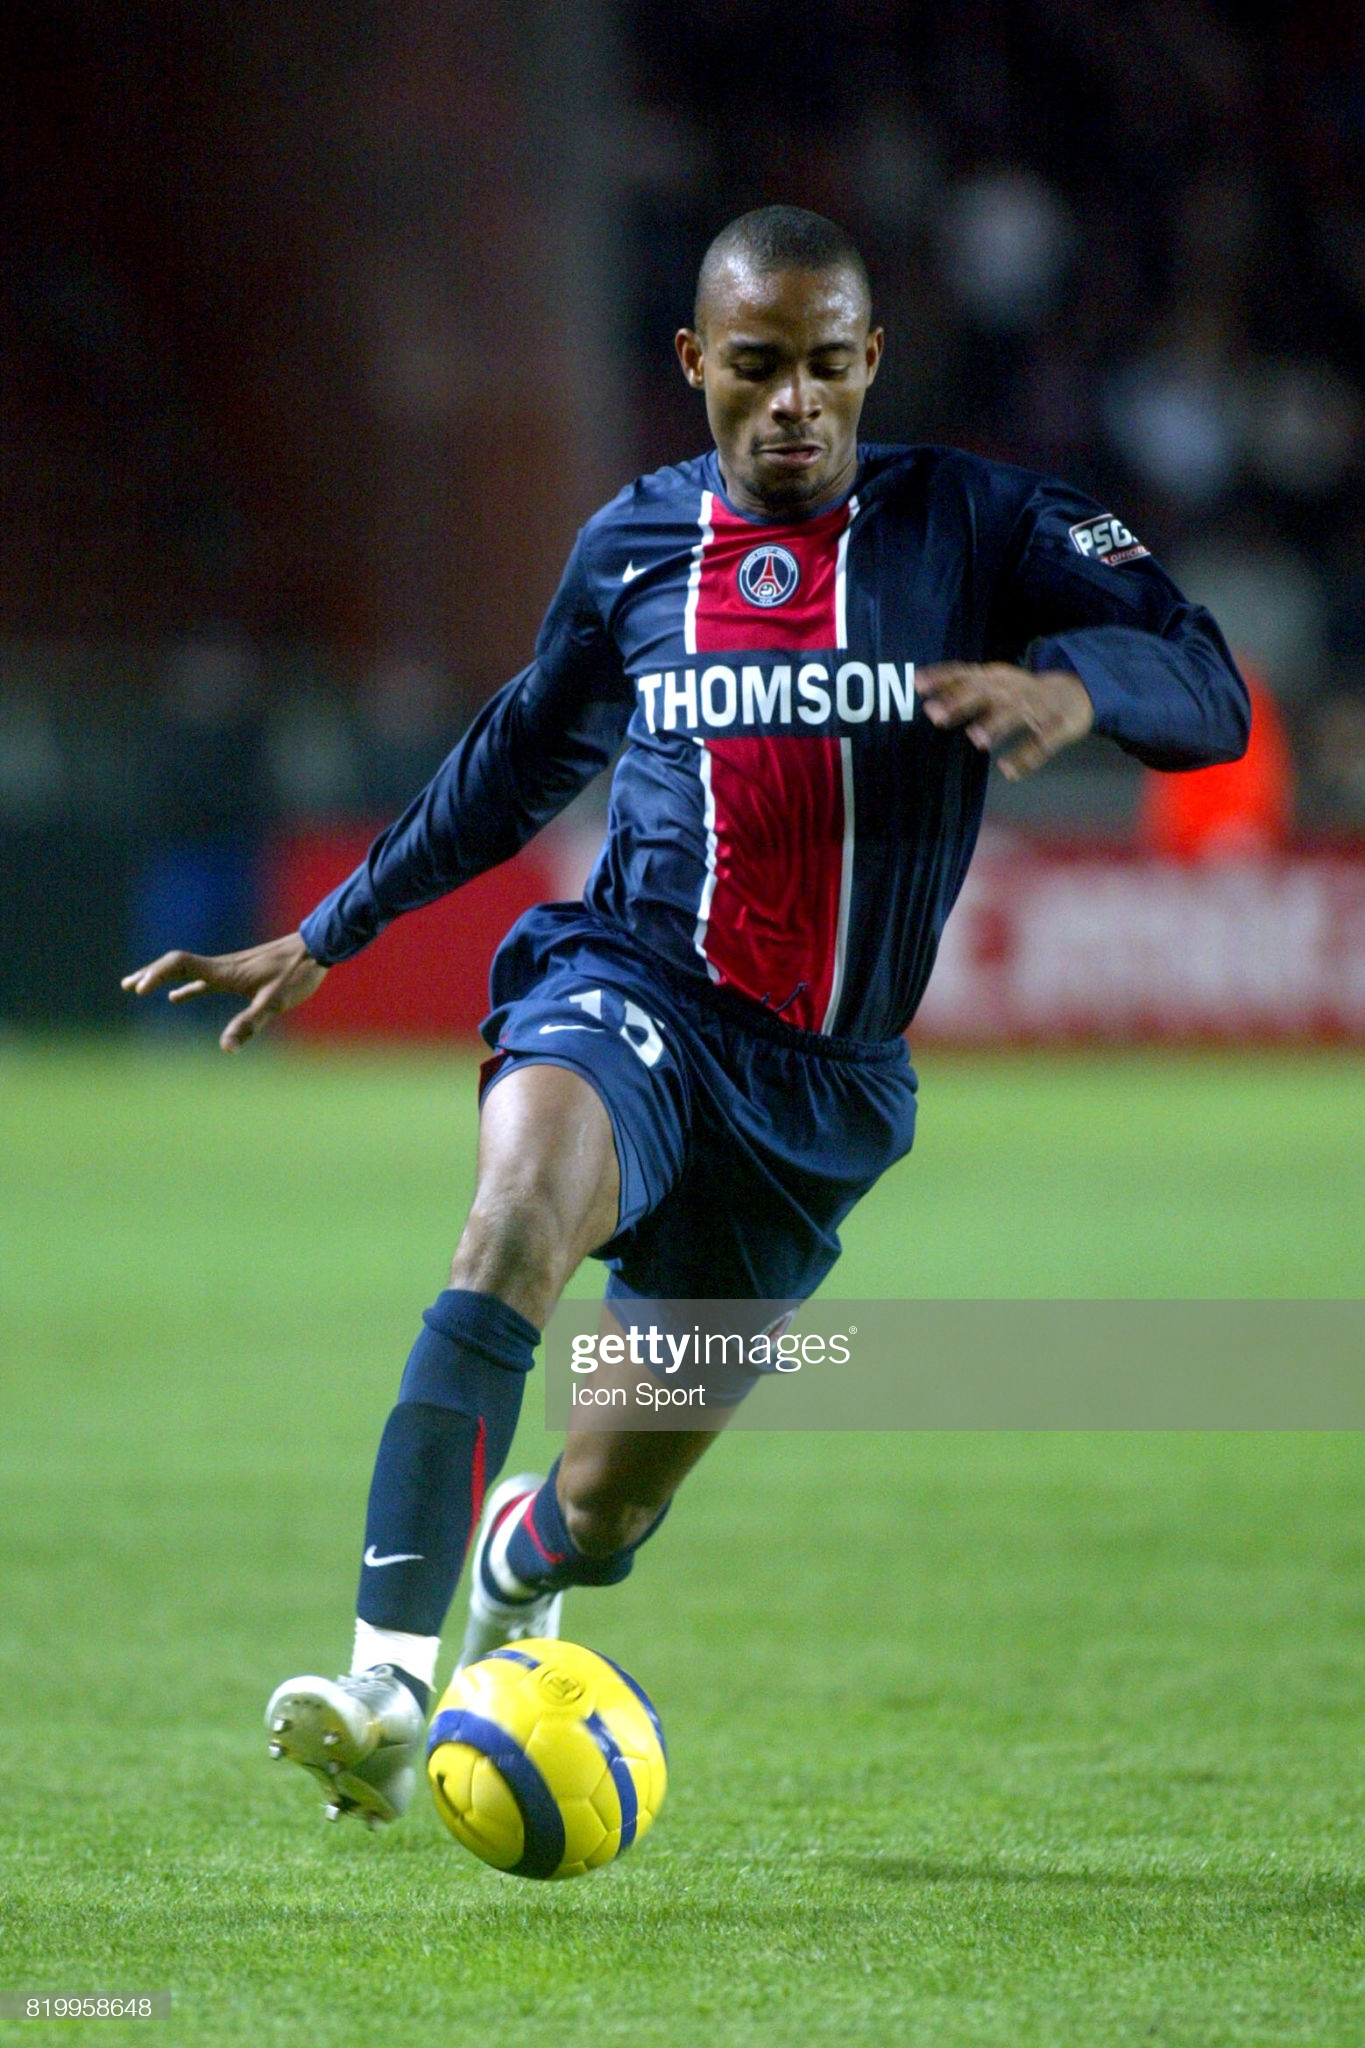 Bonaventure KALOU - 06.11.05 - PSG / Monaco - 14e journee Ligue 1,    (Photo : Olivier Andrivon / Icon Sport via Getty Images)